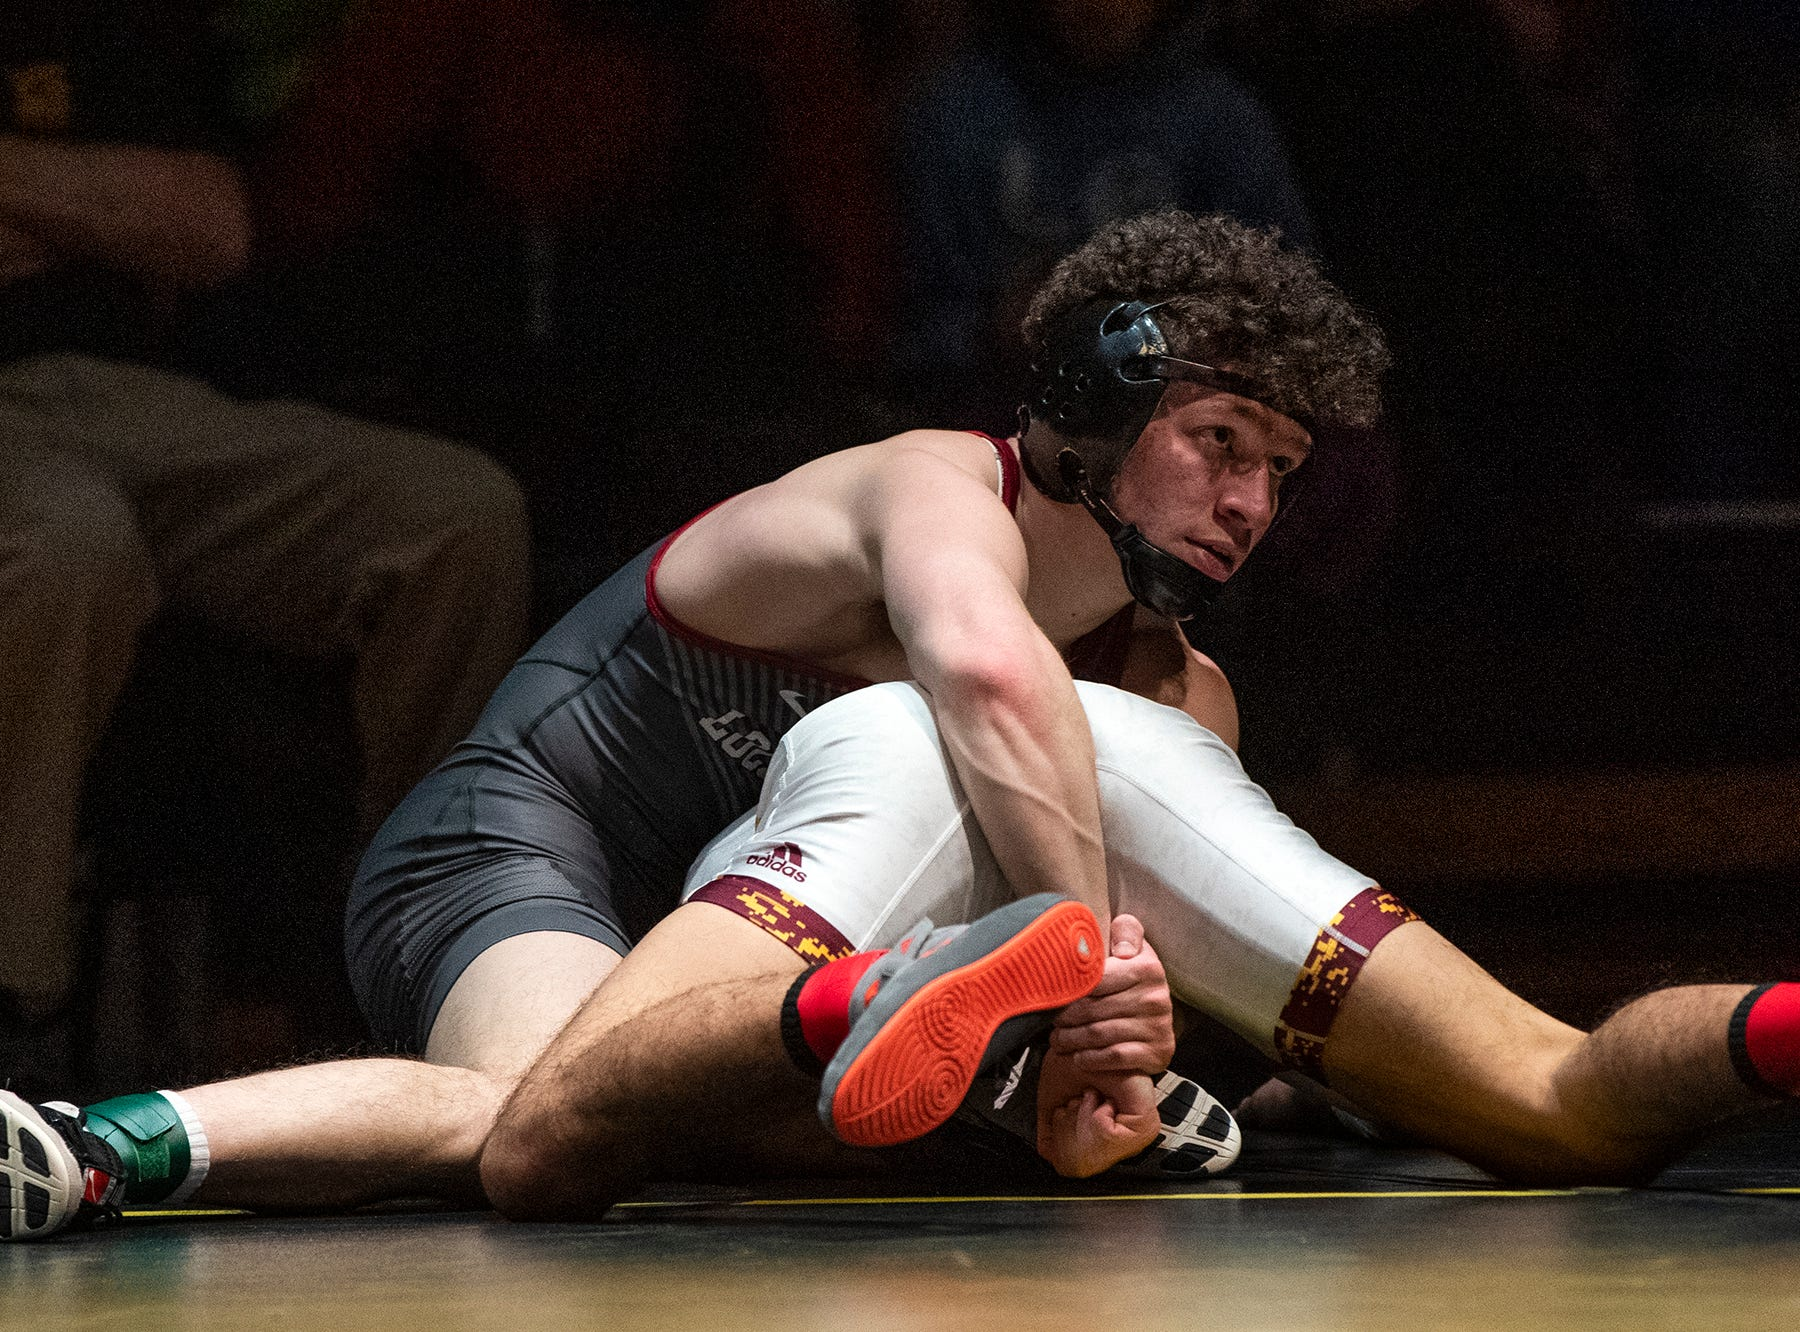 Lock Haven's Luke Werner top, looks toward his coach while wrestling Arizona State's Brandon Courtney during the 125-pound bout at Red Lion's Fitzkee Athletic Center on Friday, Jan. 25, 2019. Werner pinned Courtney as No. 22 Lock Haven upset No. 12 Arizona State, 23-14, in the first ever 'Rumble in the Jungle.'